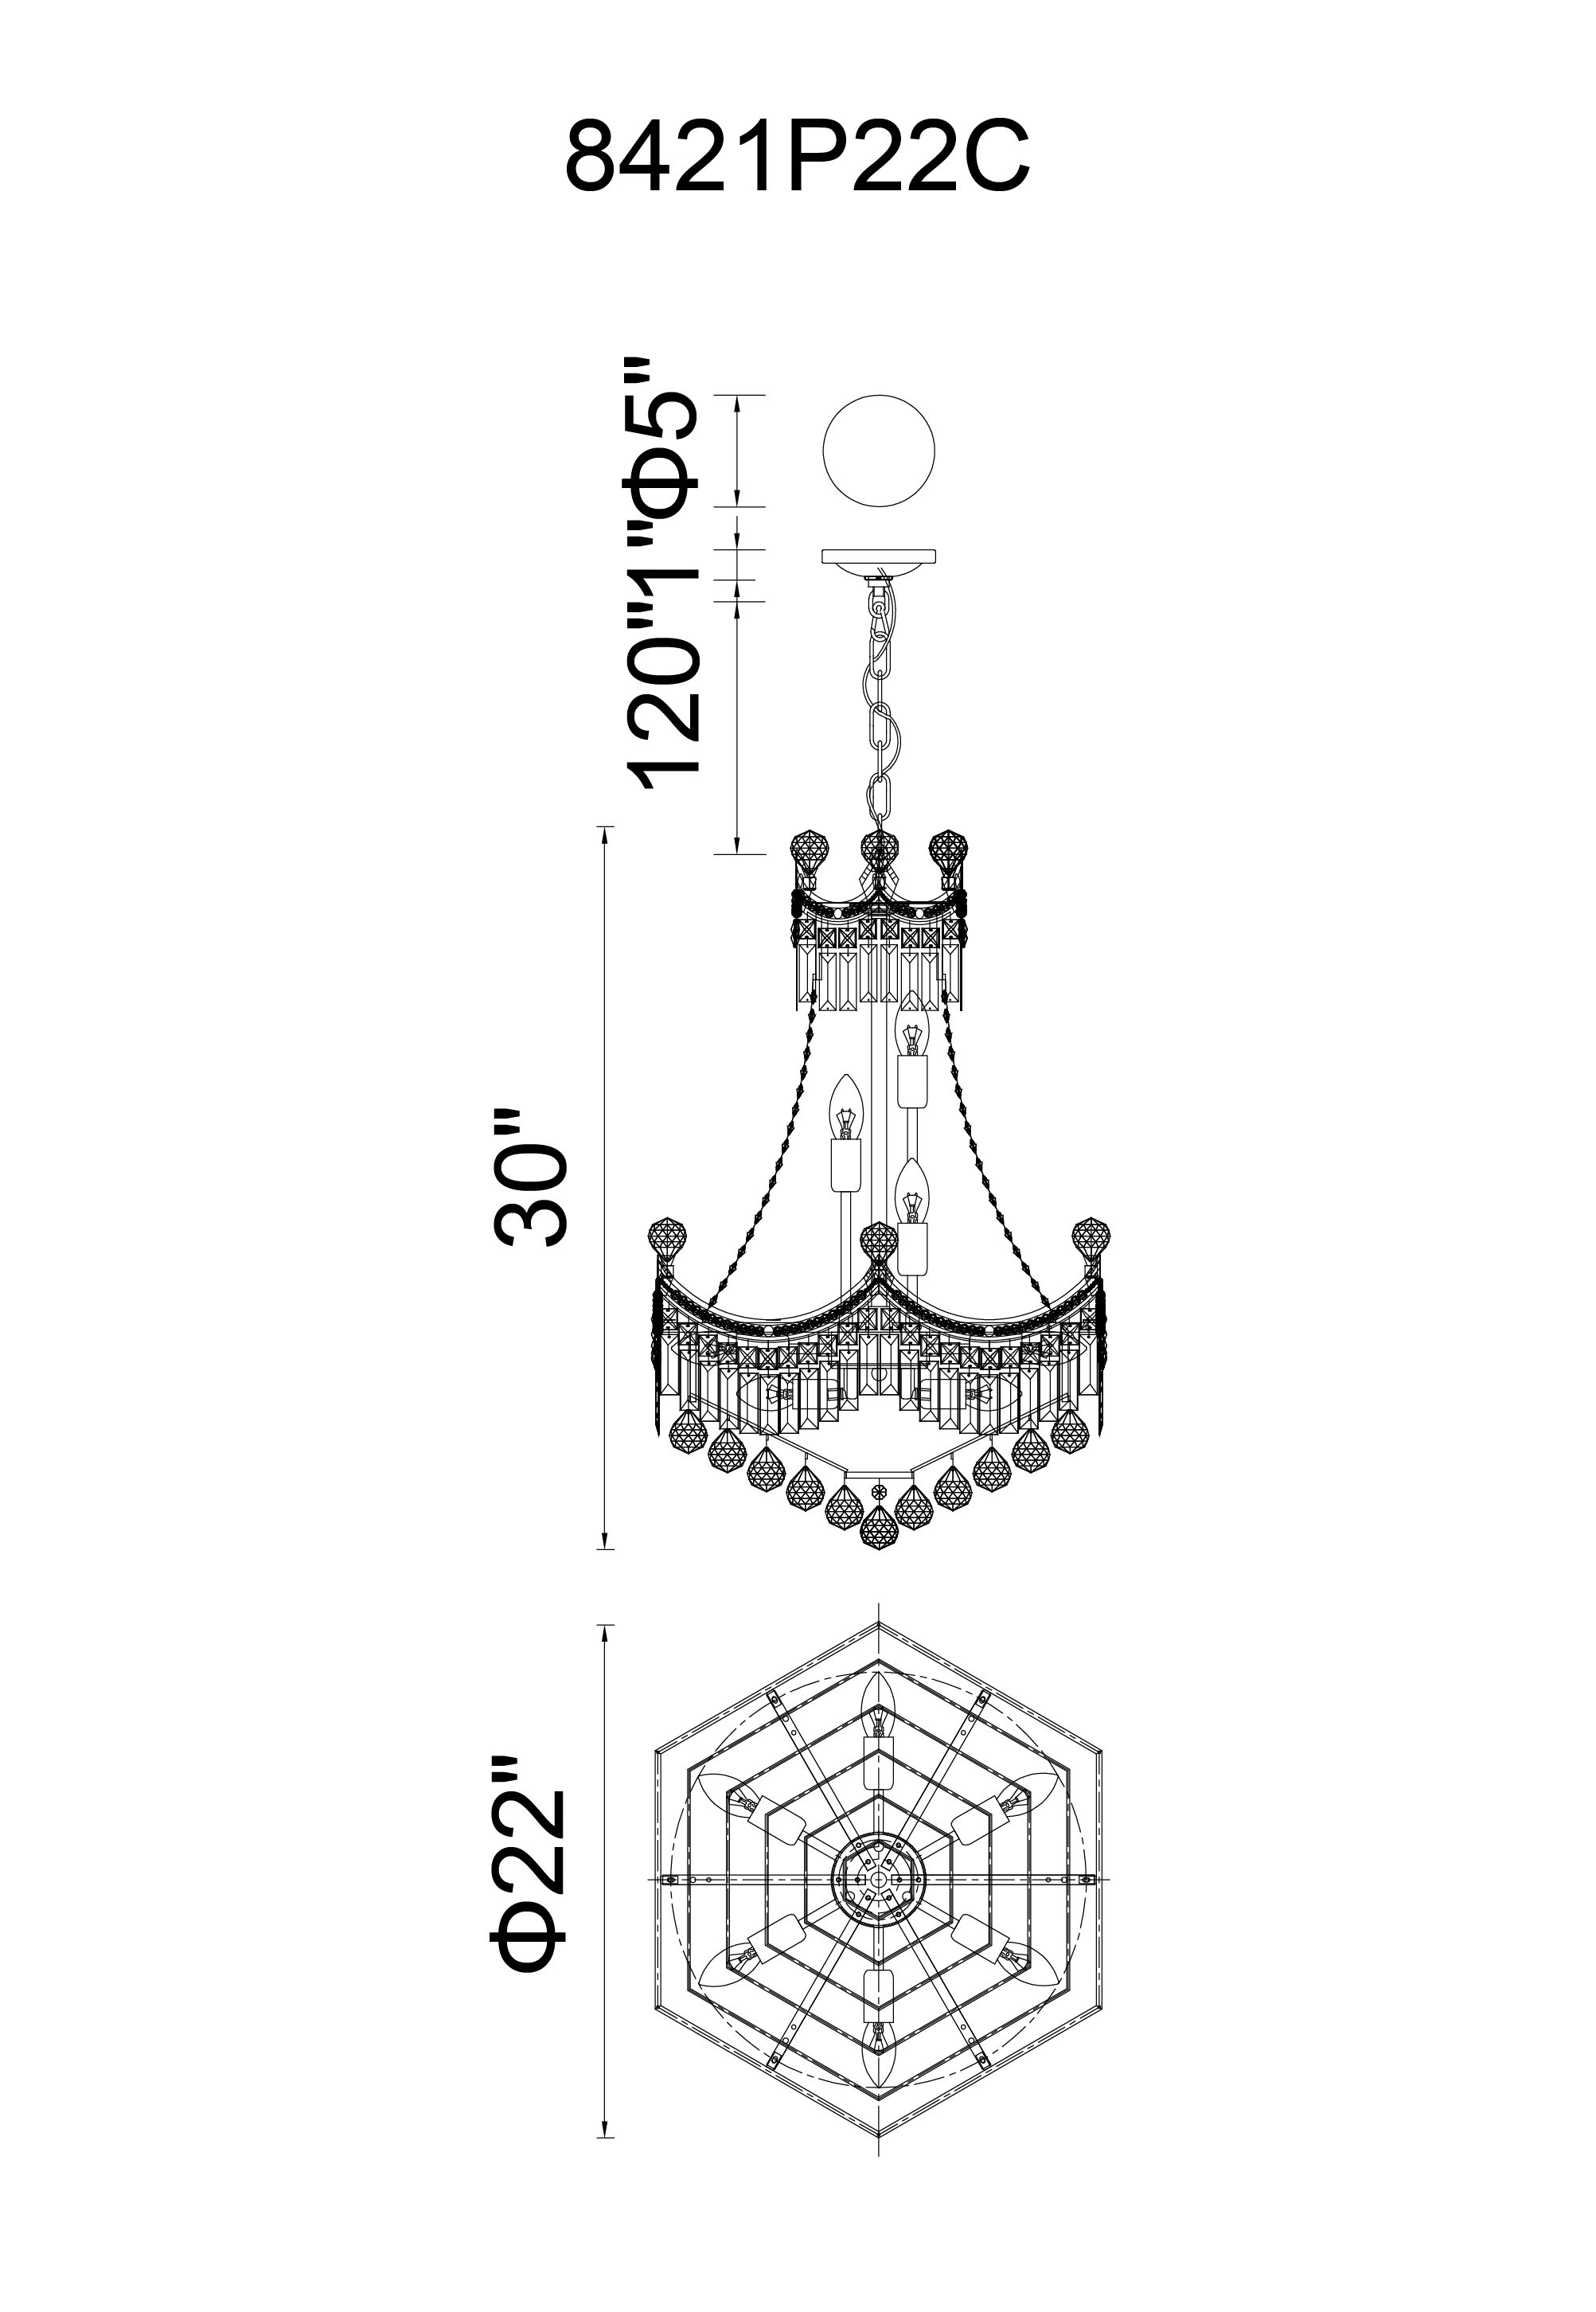 CWI Lighting Amanda 11 Light Down Chandelier With Chrome Finish Model: 8421P22C Line Drawing